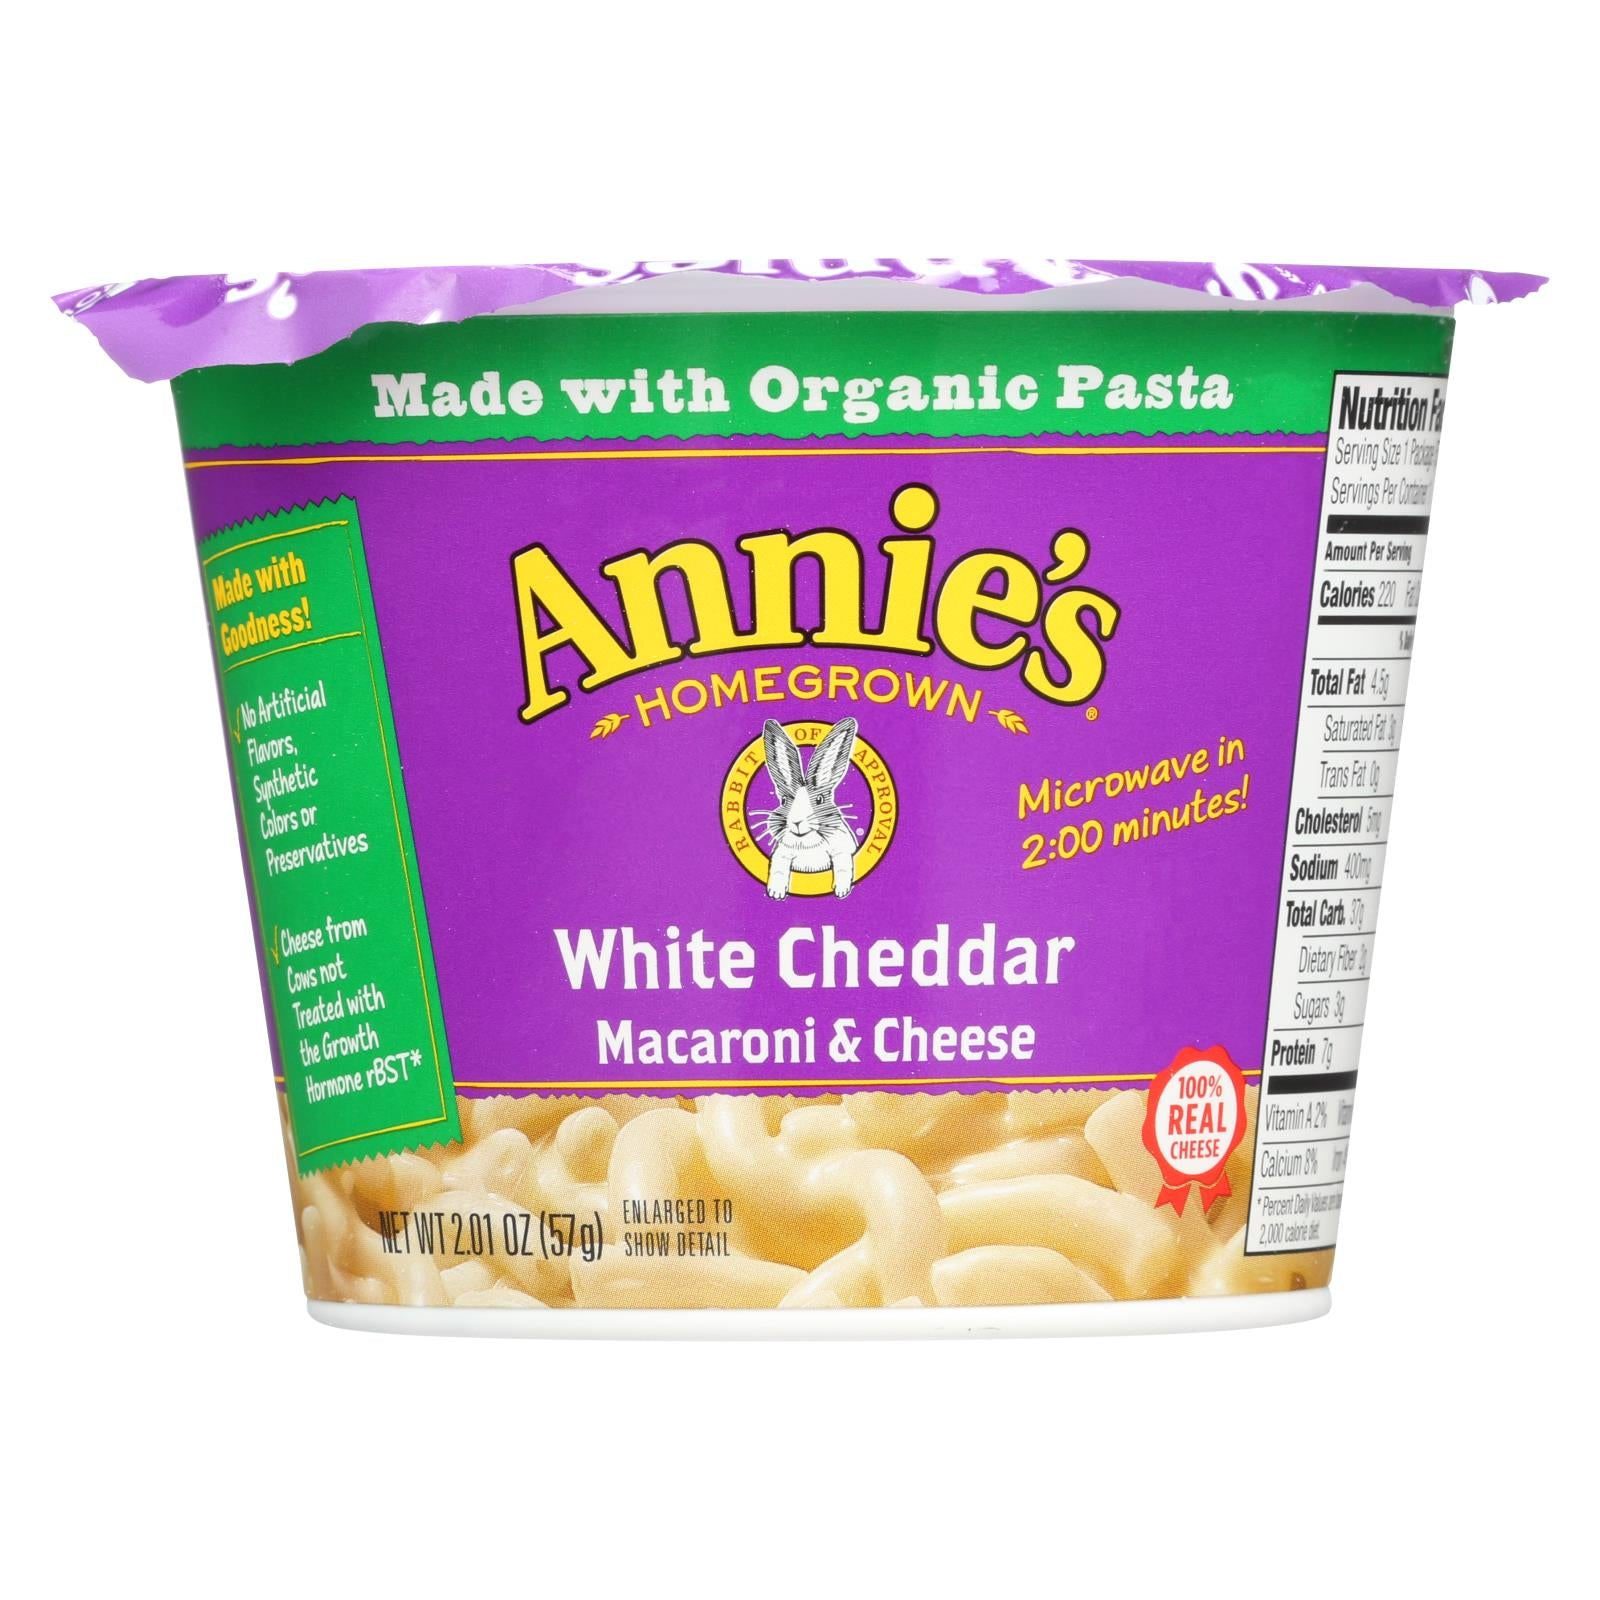 Annie's Homegrown White Cheddar Microwavable Macaroni And Cheese Cup - Case Of 12 - 2.01 Oz. HG1254853